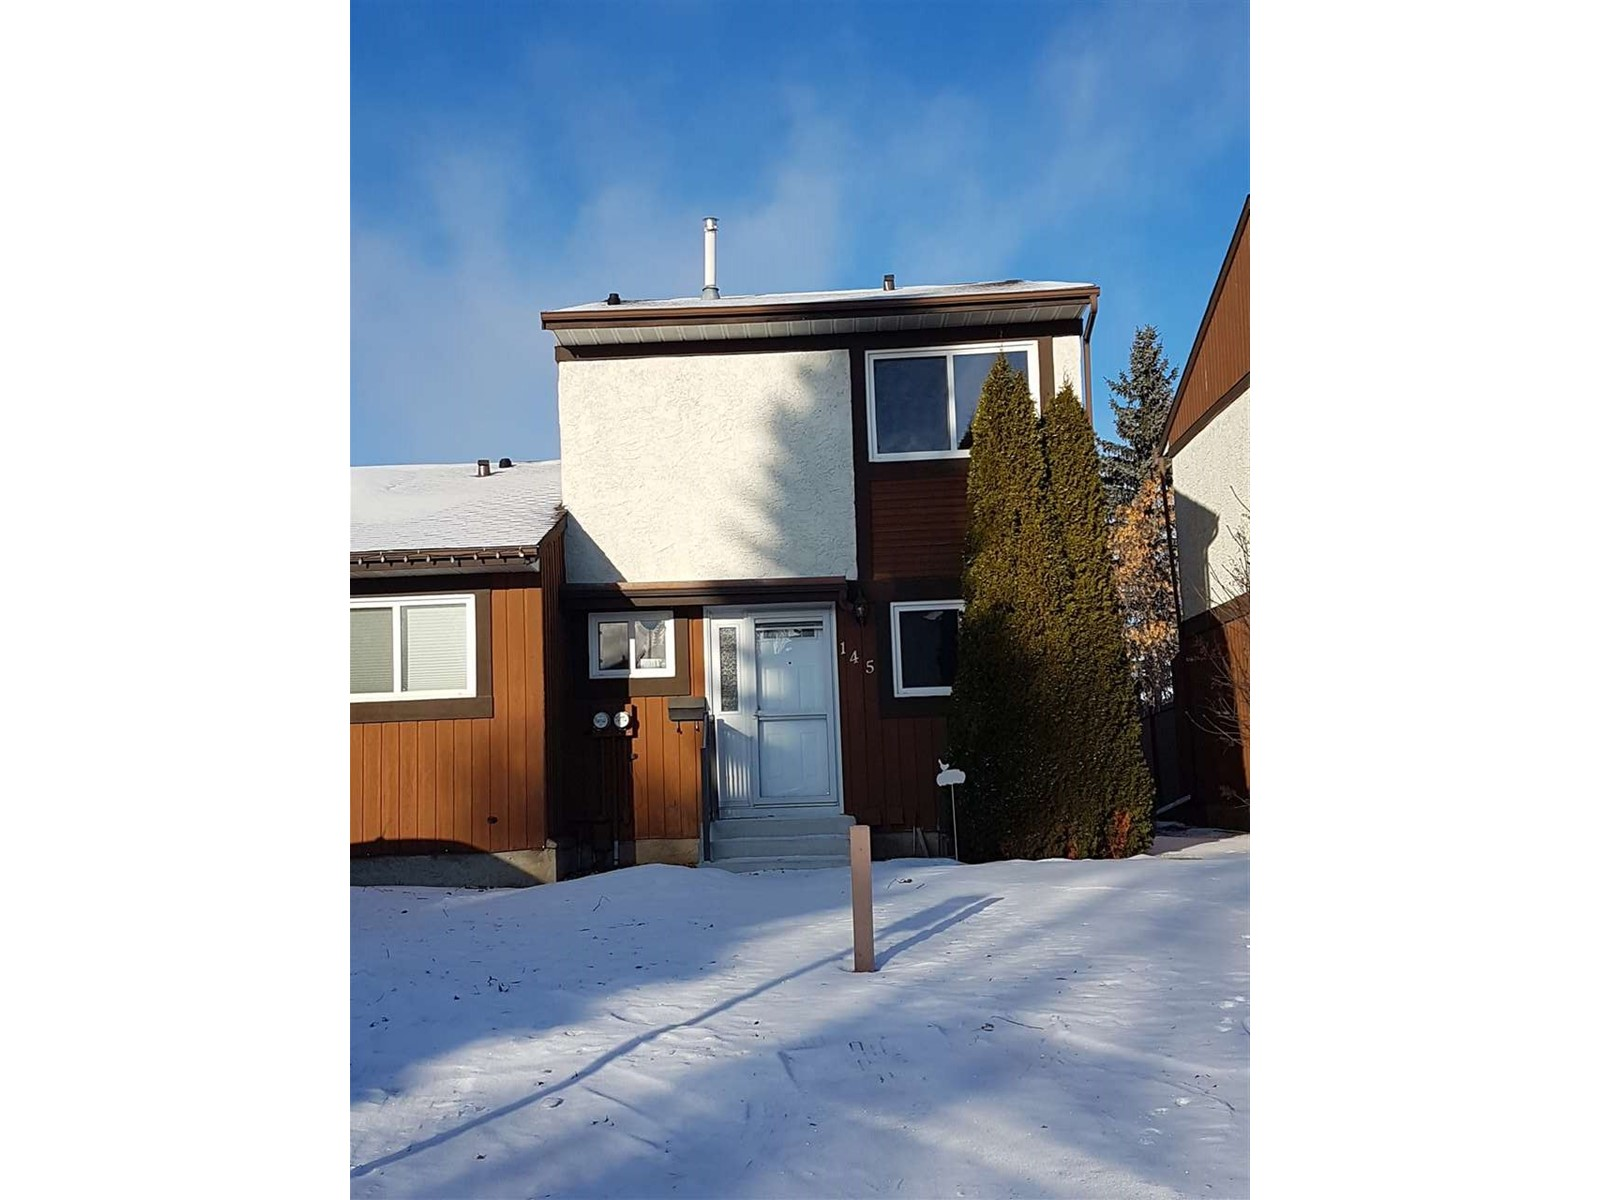 #145 16725 106 street NW, Edmonton, Alberta, Canada T5X5G5, 3 Bedrooms Bedrooms, Register to View ,2 BathroomsBathrooms,Townhouse,For Sale,E4223428